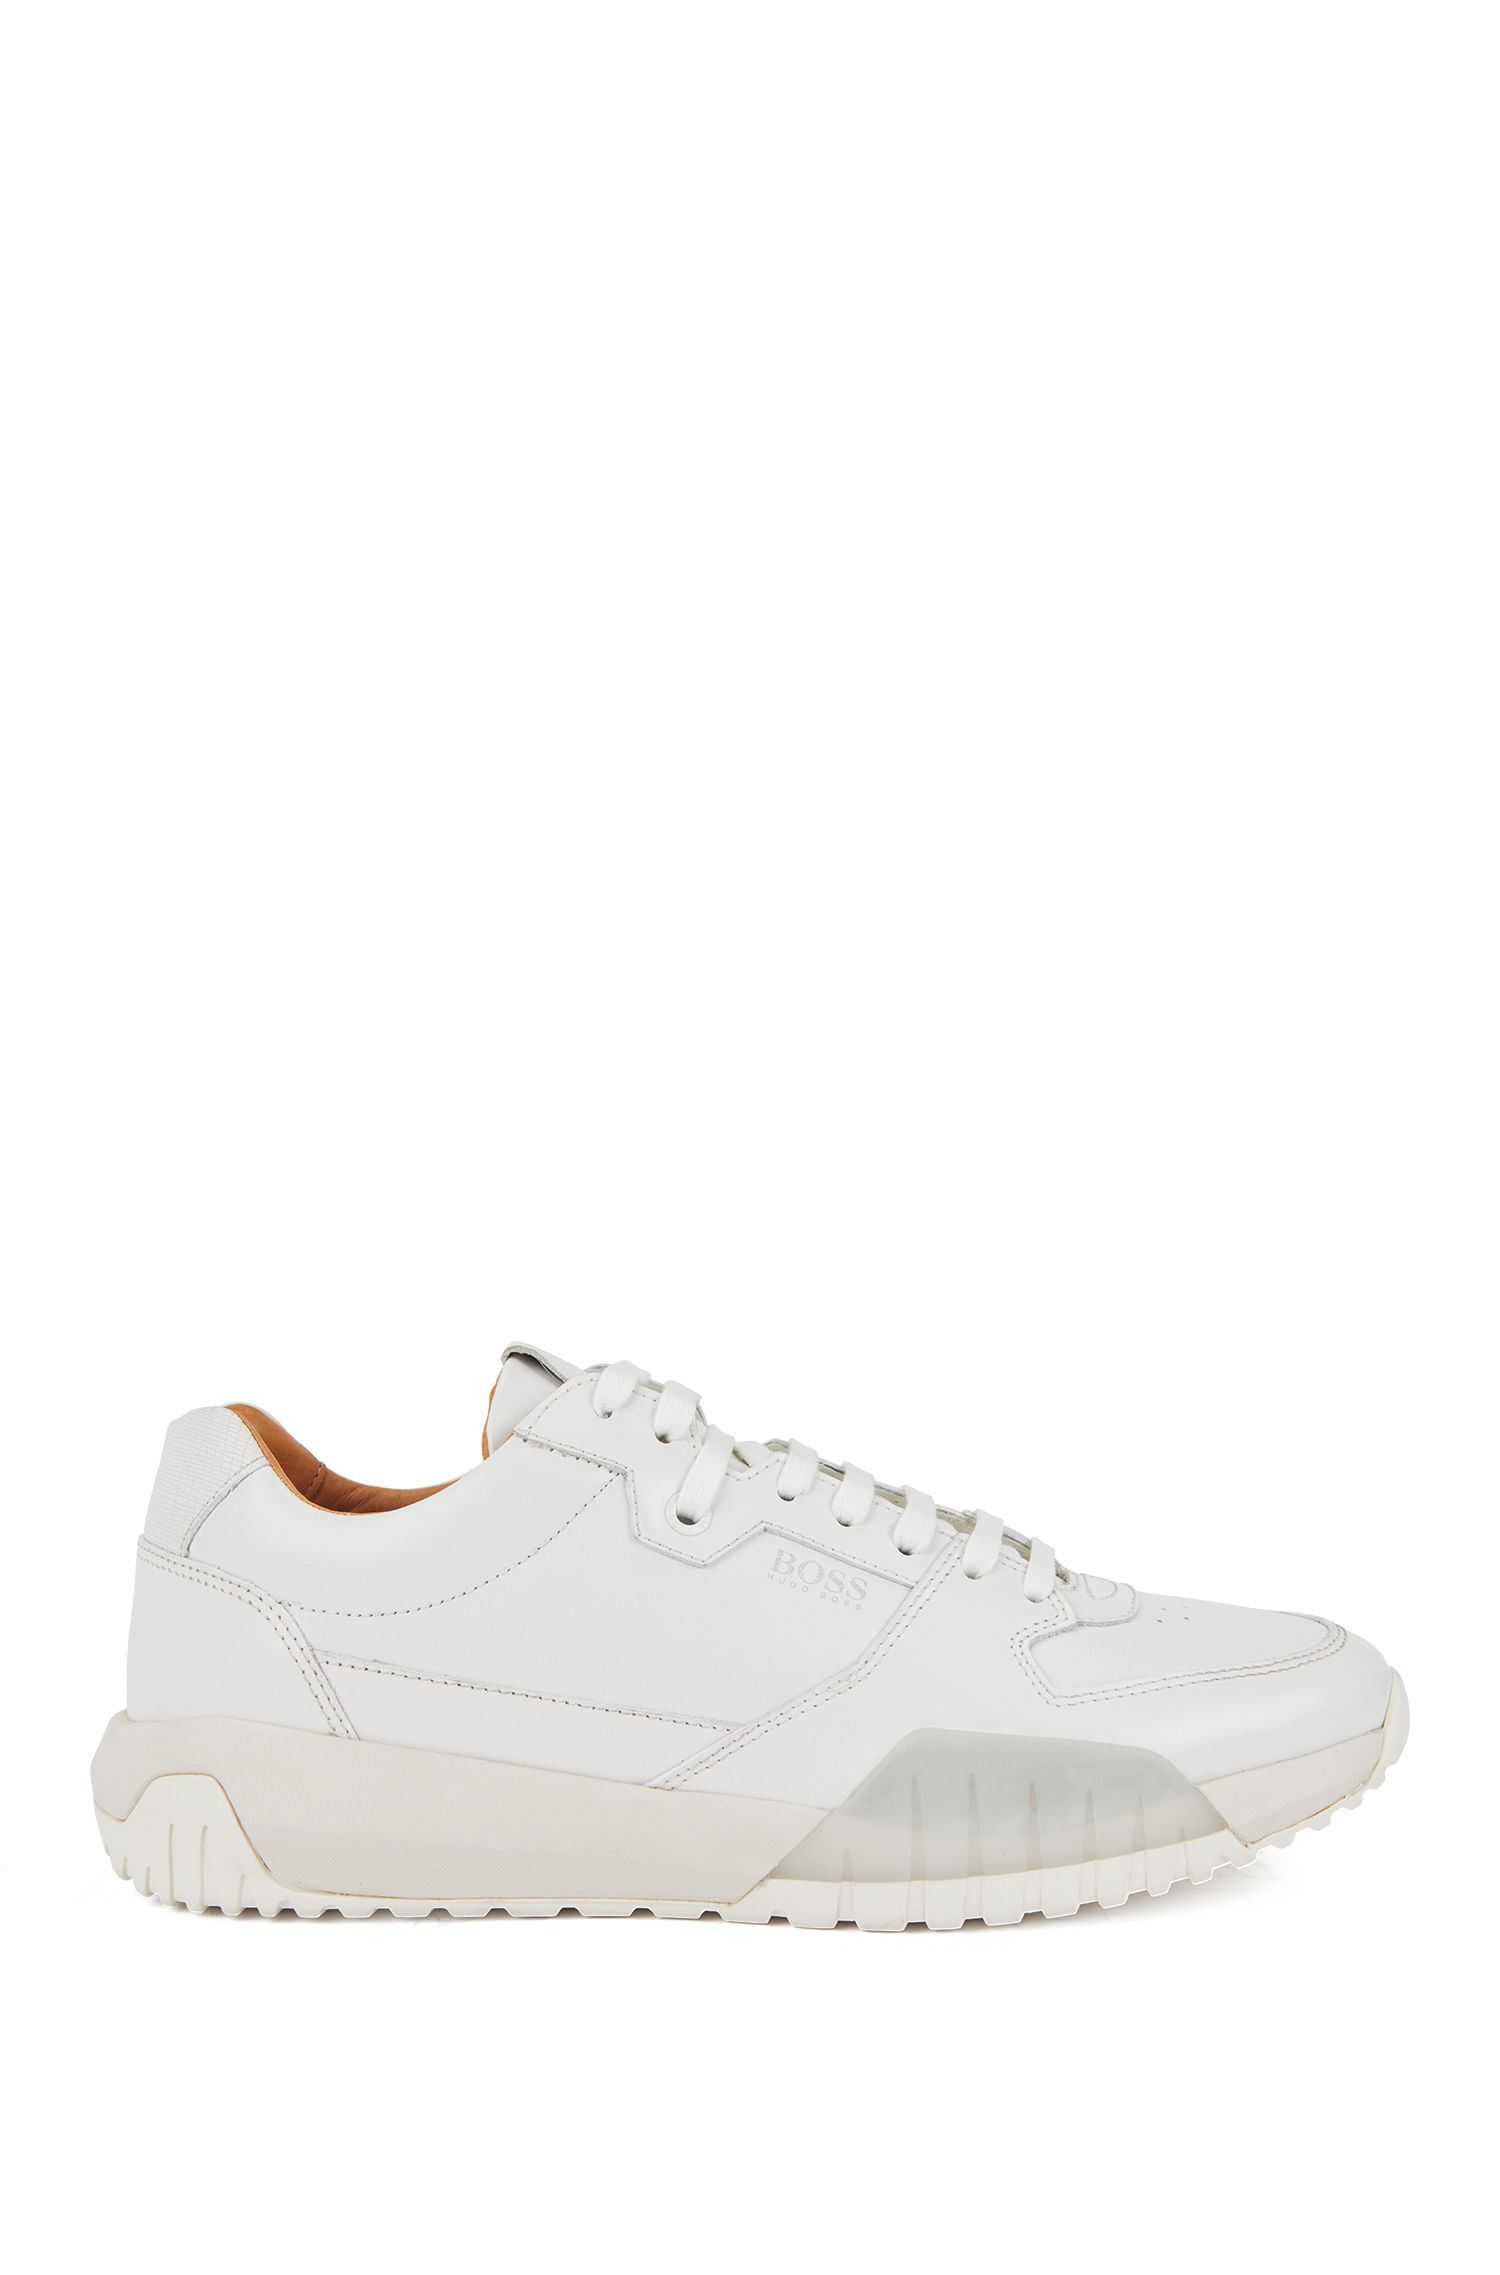 Running-inspired trainers with calf-leather uppers, White